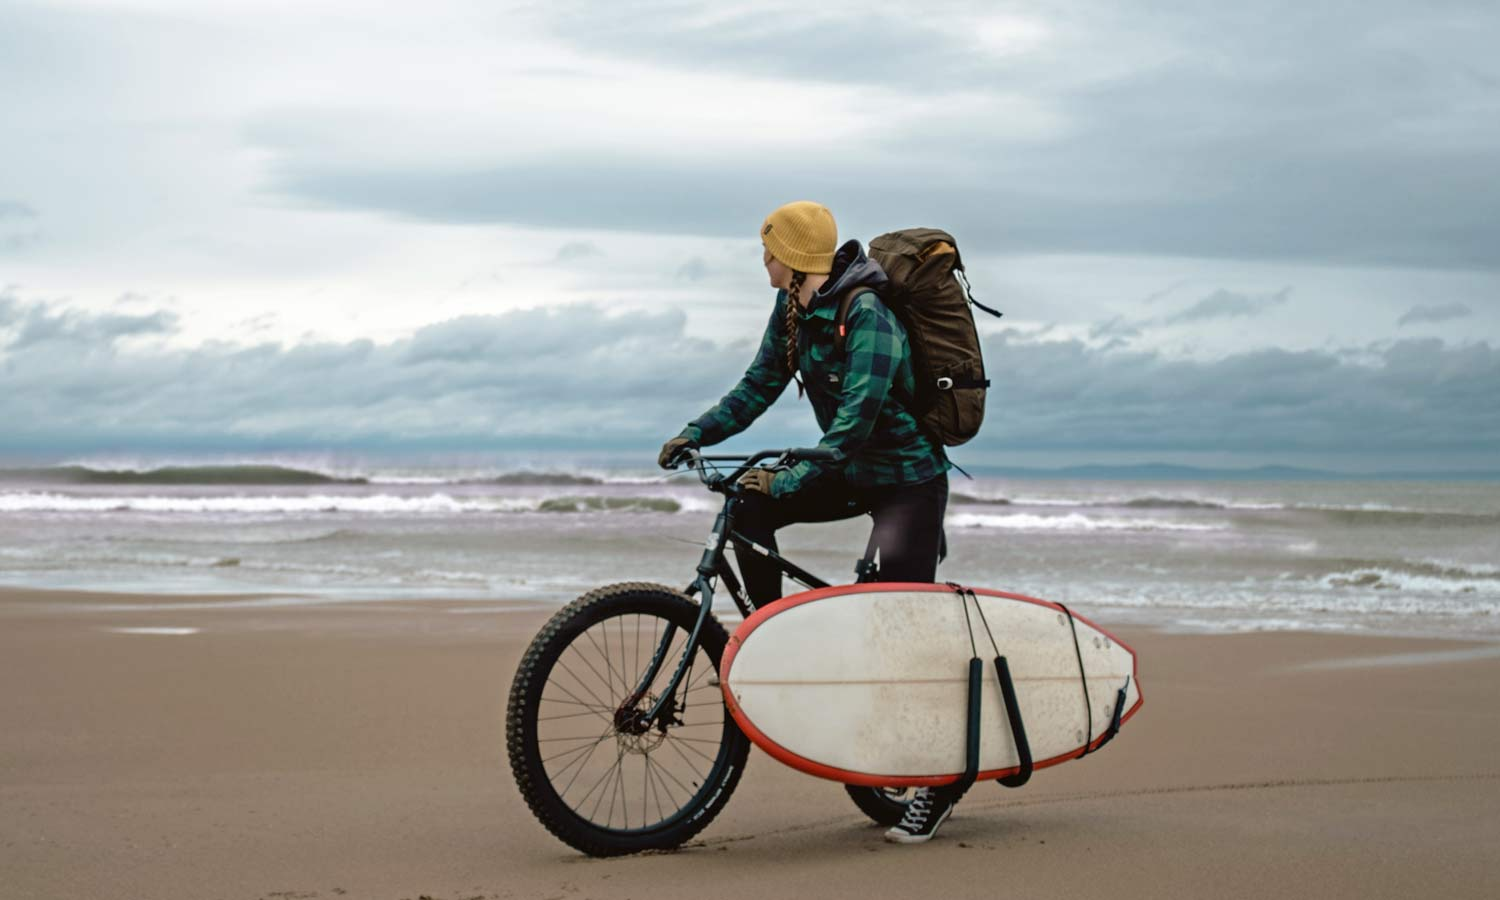 The Overland technical casual riding kit outdoor gear, beyond road gravel adventure mountain bike clothing bike surf